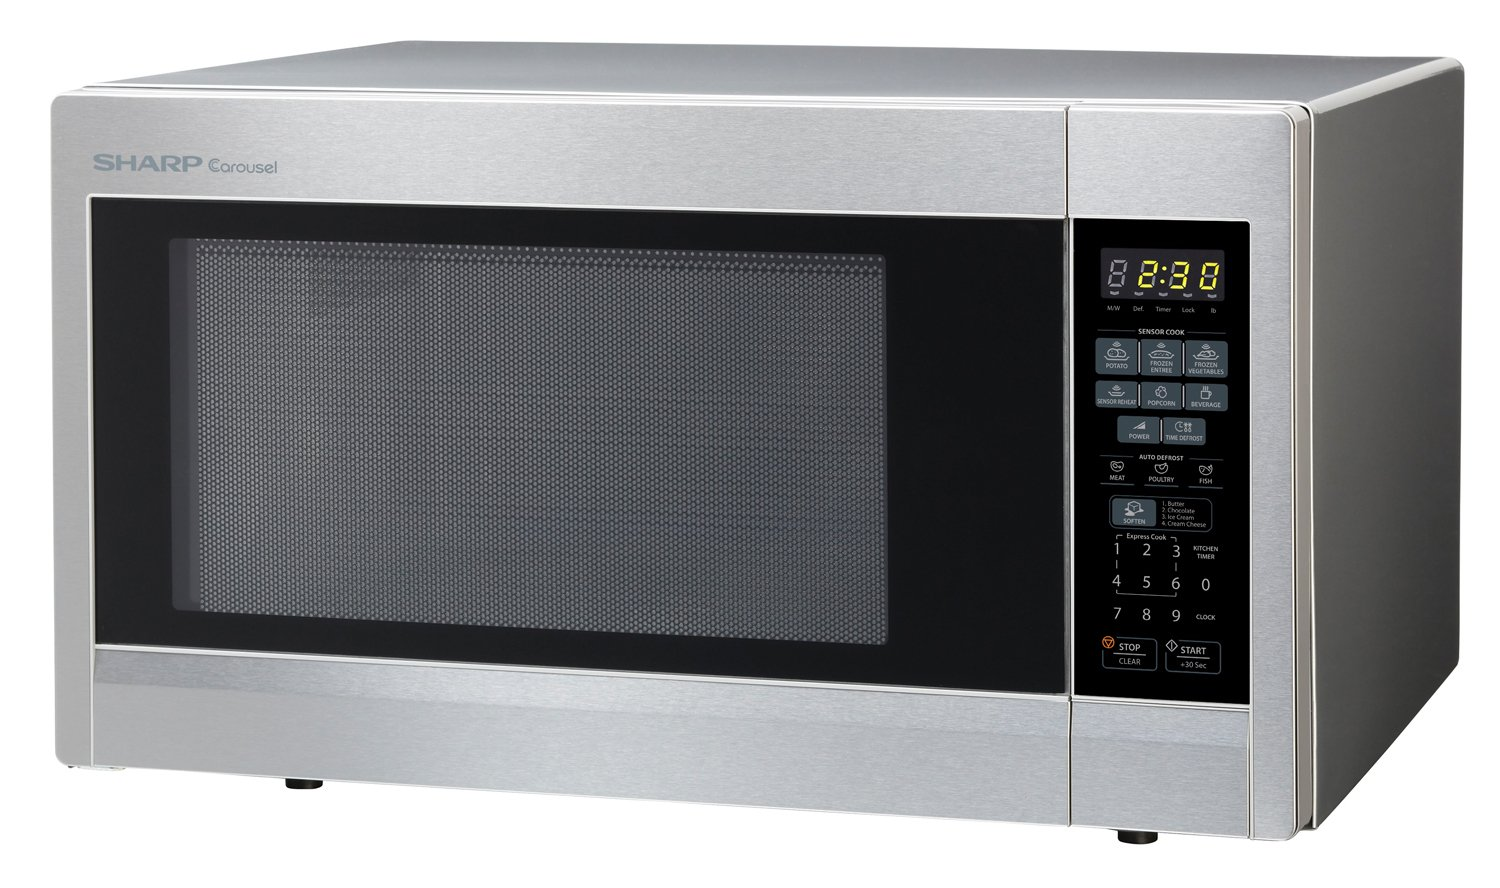 Top 10 Best Speed Cooking Microwave Ovens 99smarthomes